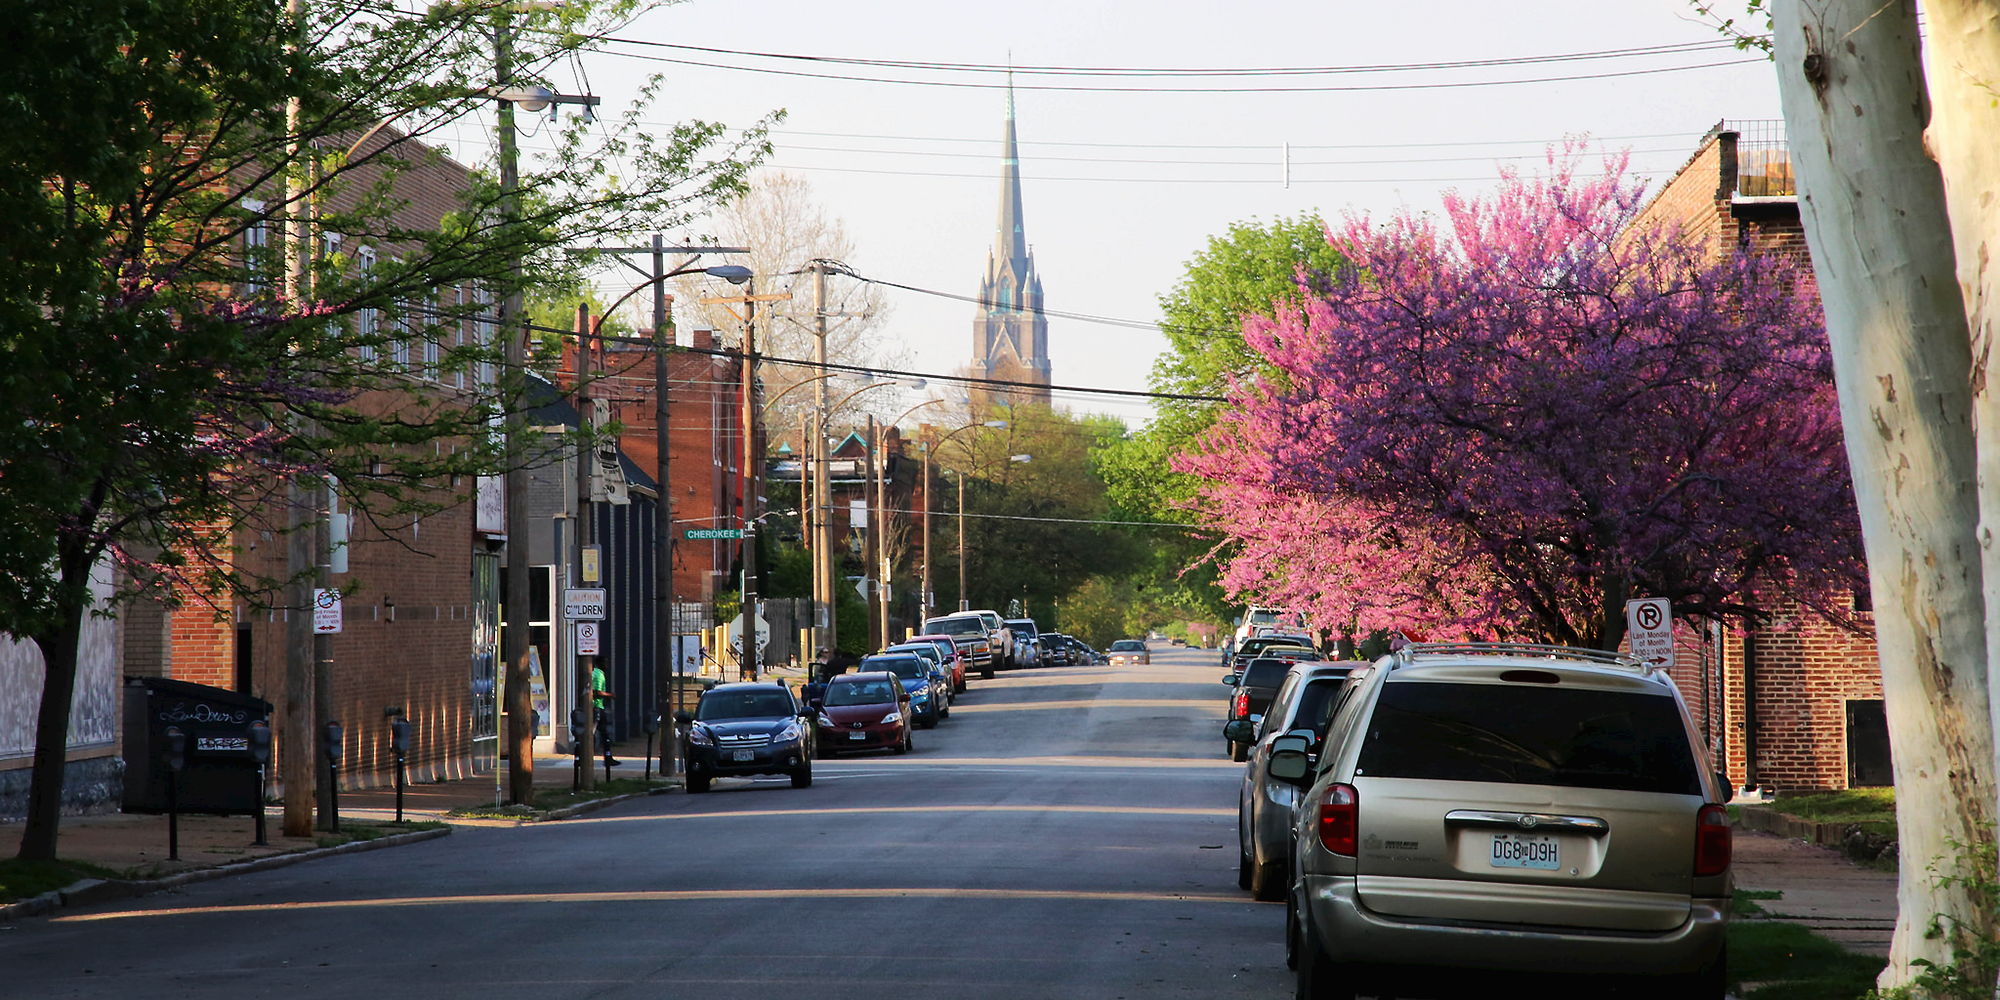 Ohio Avenue at Cherokee, looking north towards St. Francis de Sales Church. Photo by Paul Sableman.